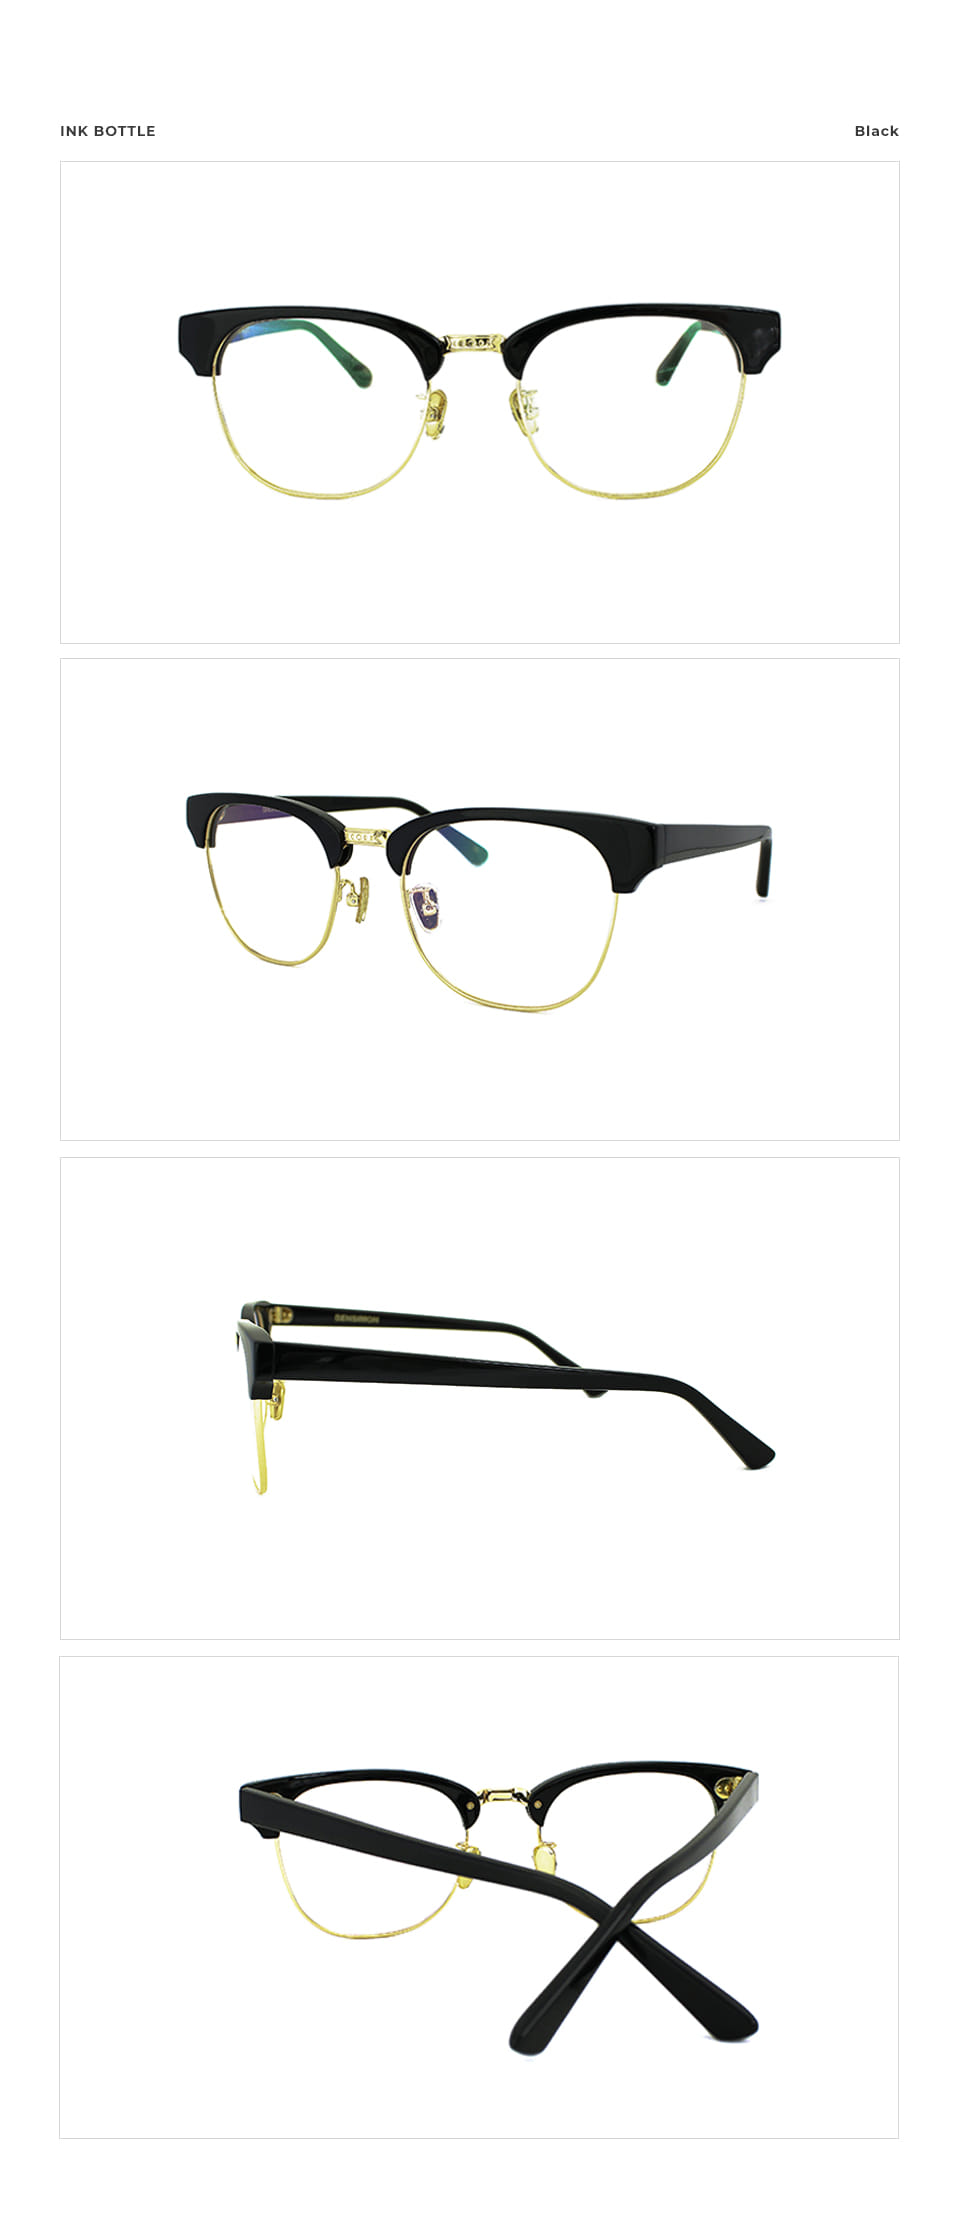 벤시몽아이웨어(BENSIMON EYEWEAR) BENSIMON Ink Bottle Black